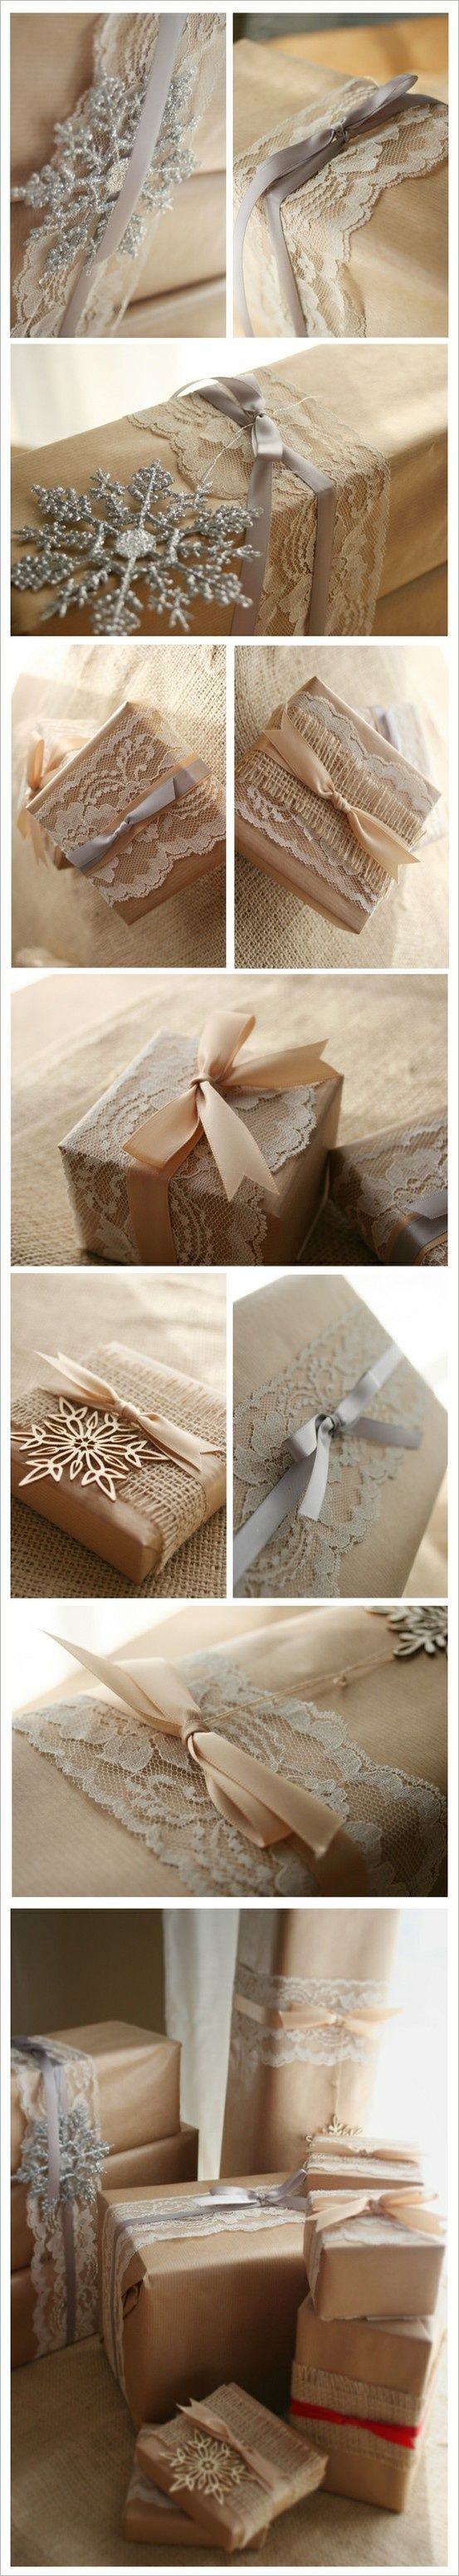 frilly wrapping ideas